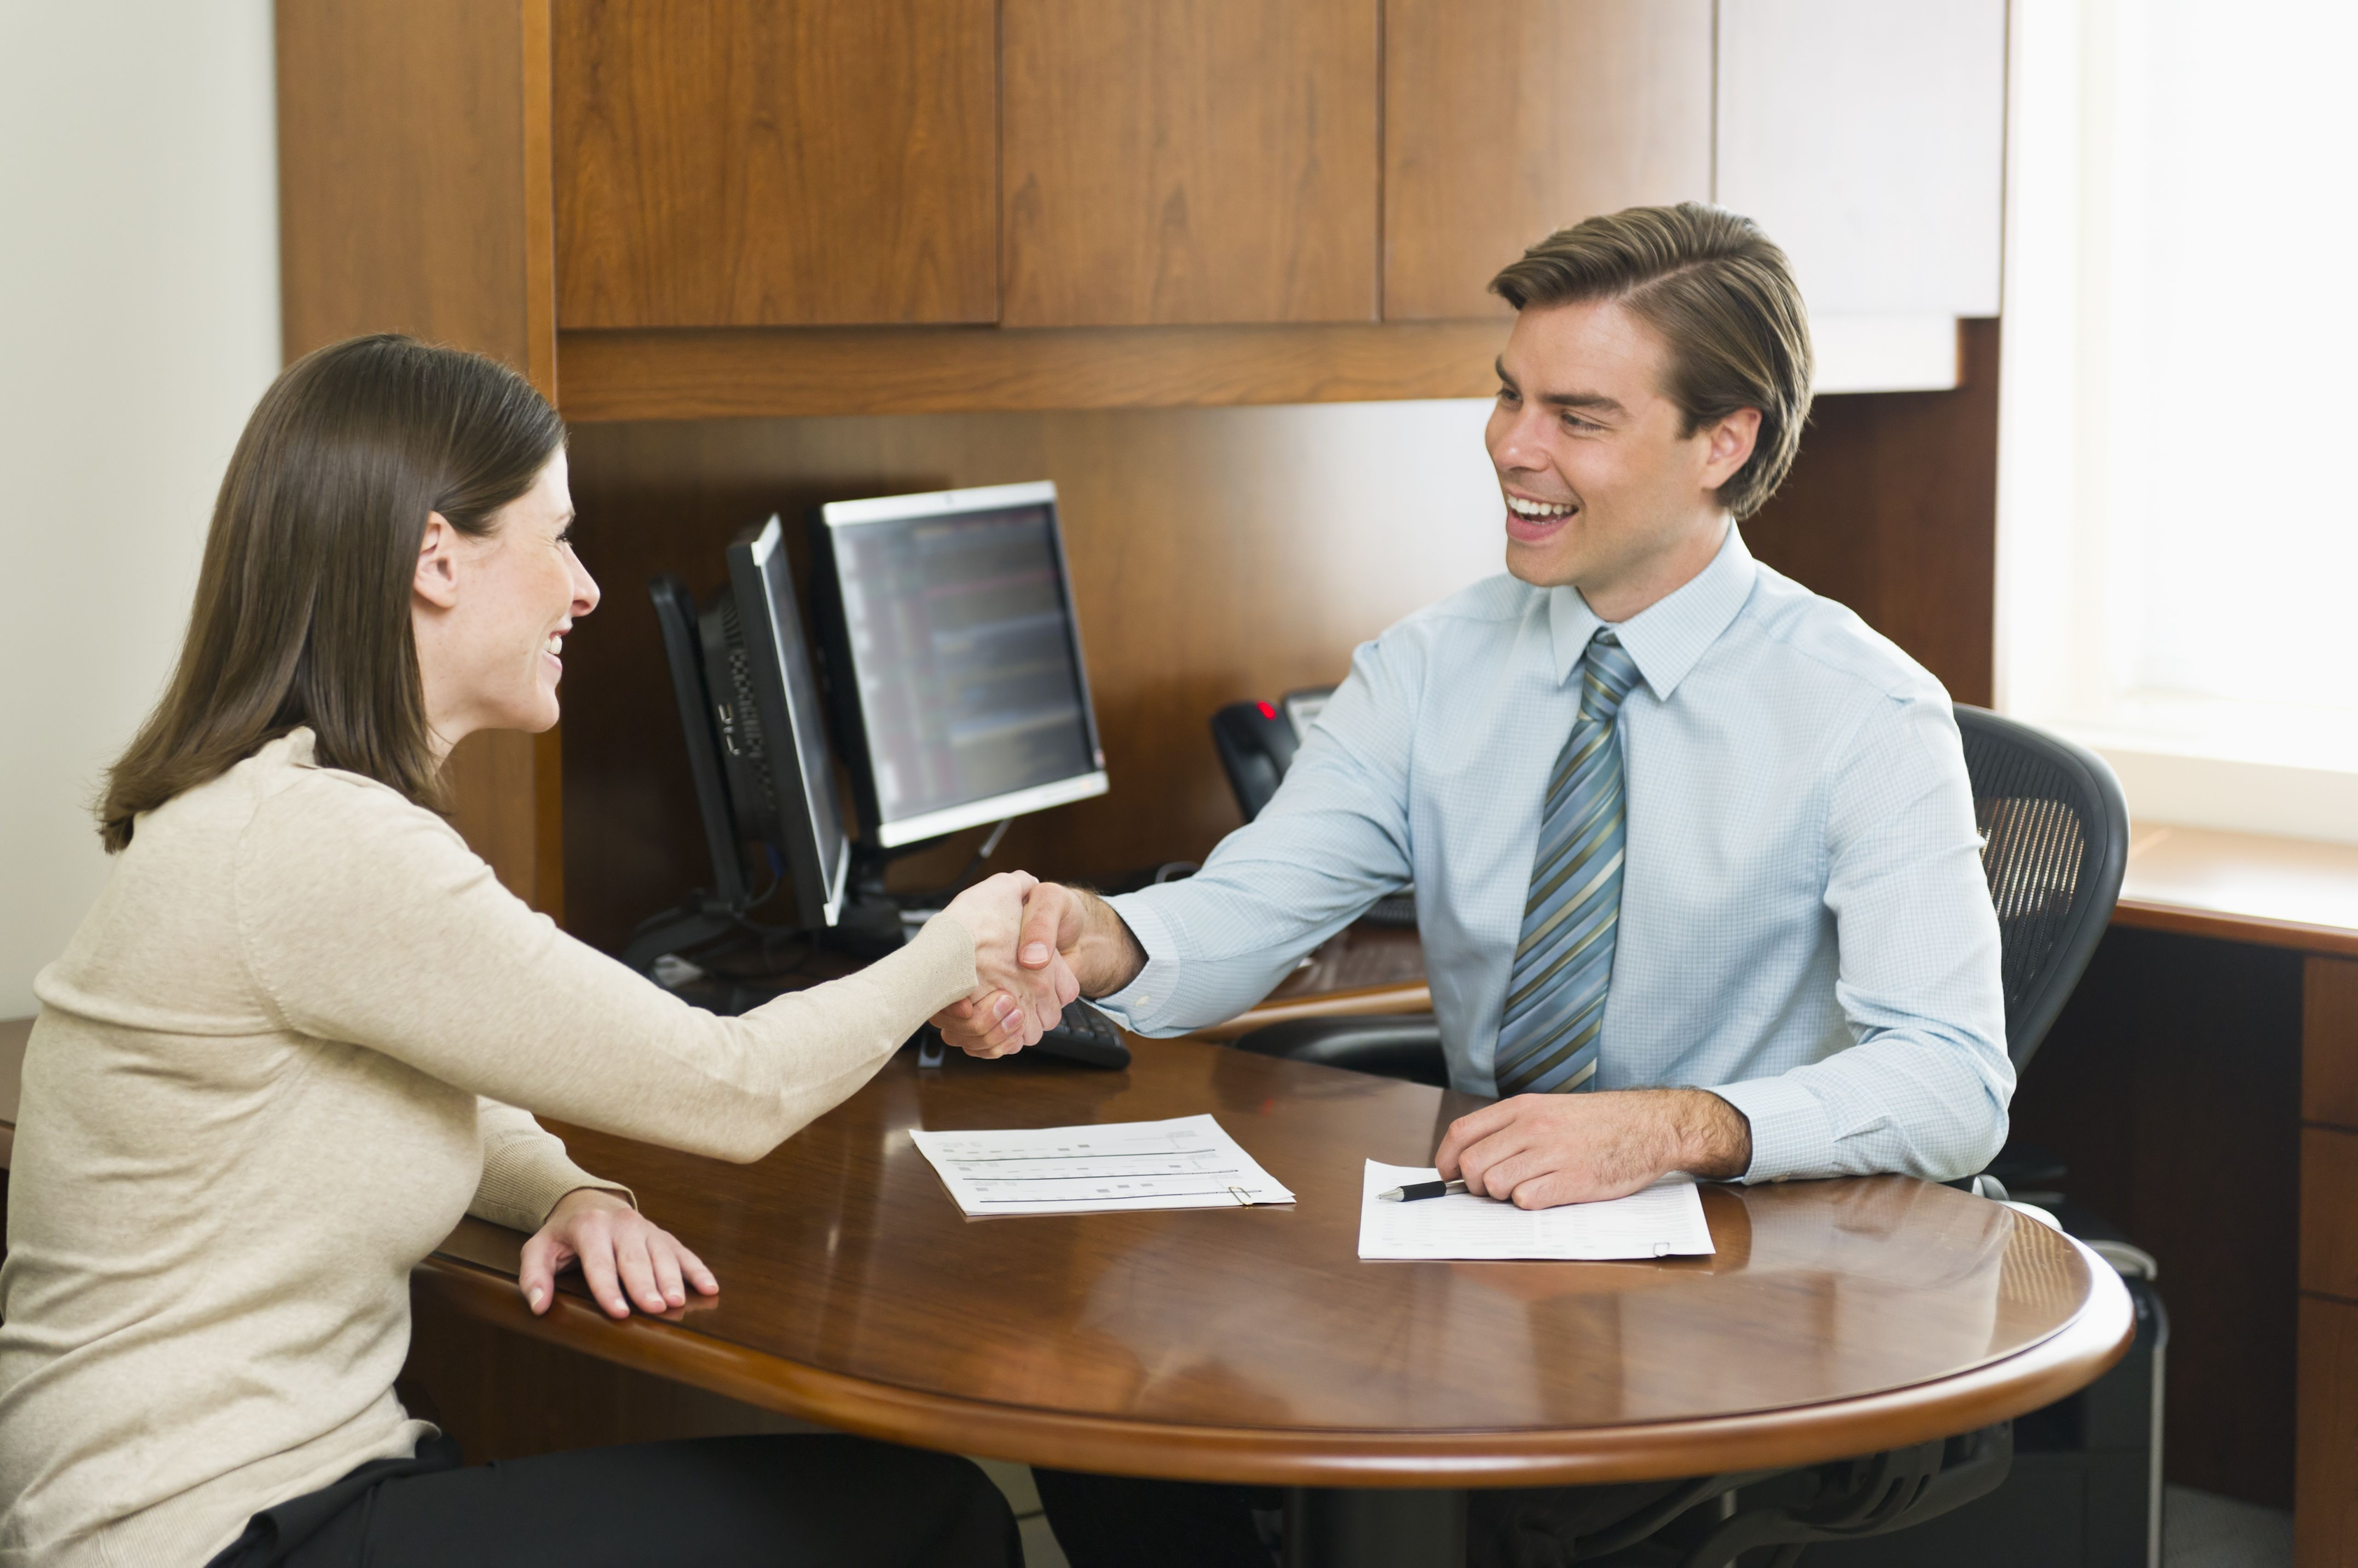 making a job offer Knowing how to make a job offer isn't always as easy as it looks learn the ins and outs so you don't lose a great candidate to another organization.